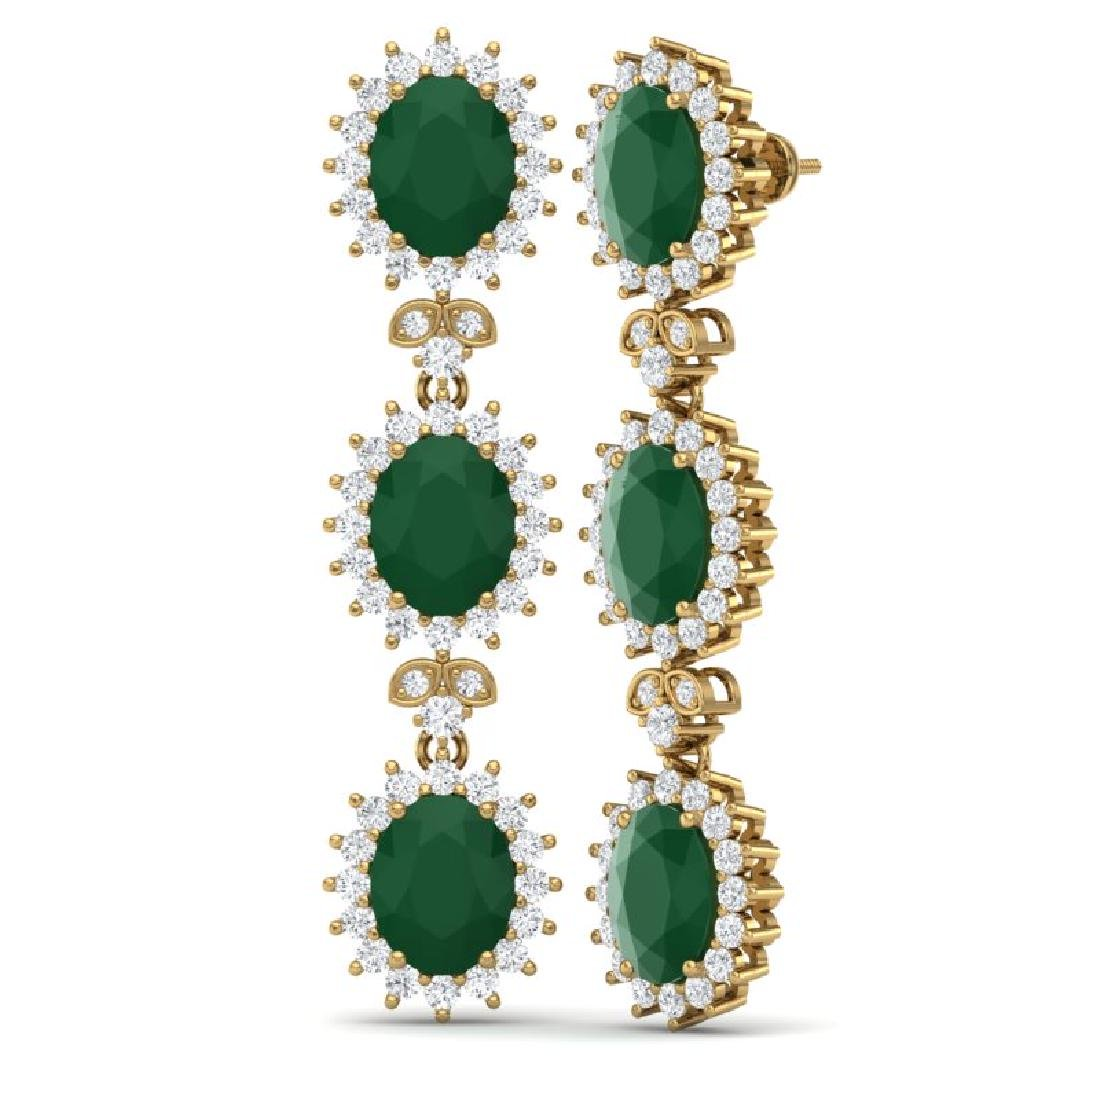 24.52 CTW Royalty Emerald & VS Diamond Earrings 18K - 3